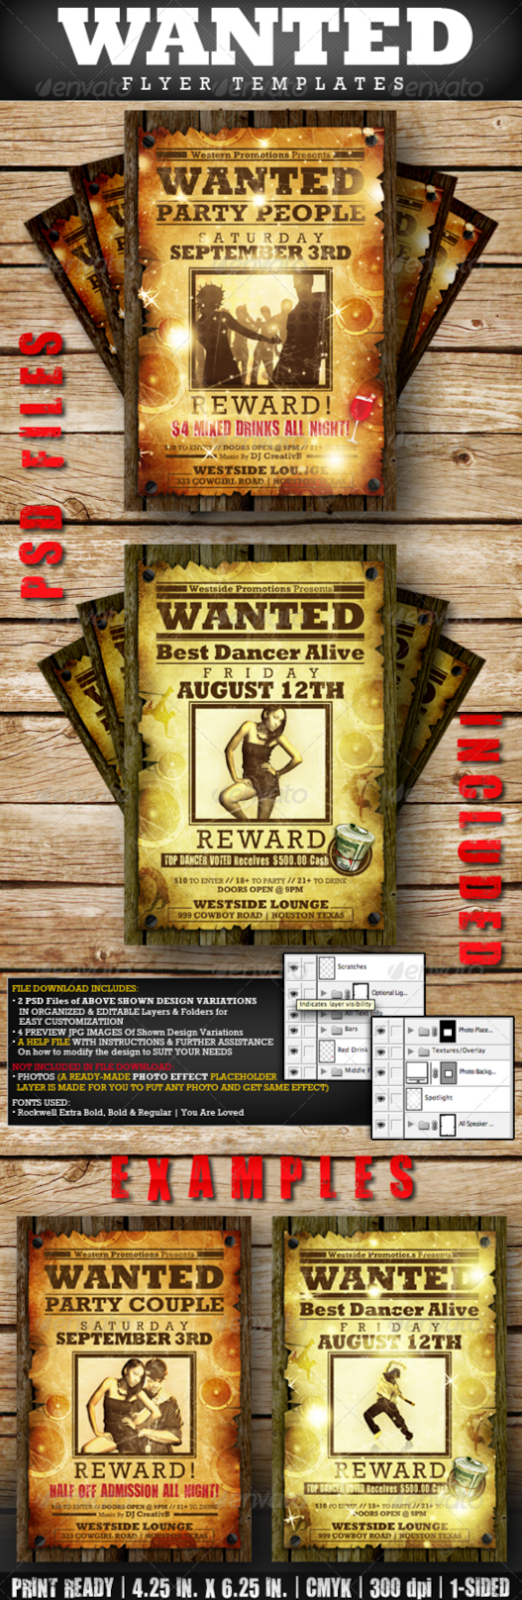 20 Best Wanted Poster Templates PSD Download   Designsmag.org   Web Design  And Development Resource